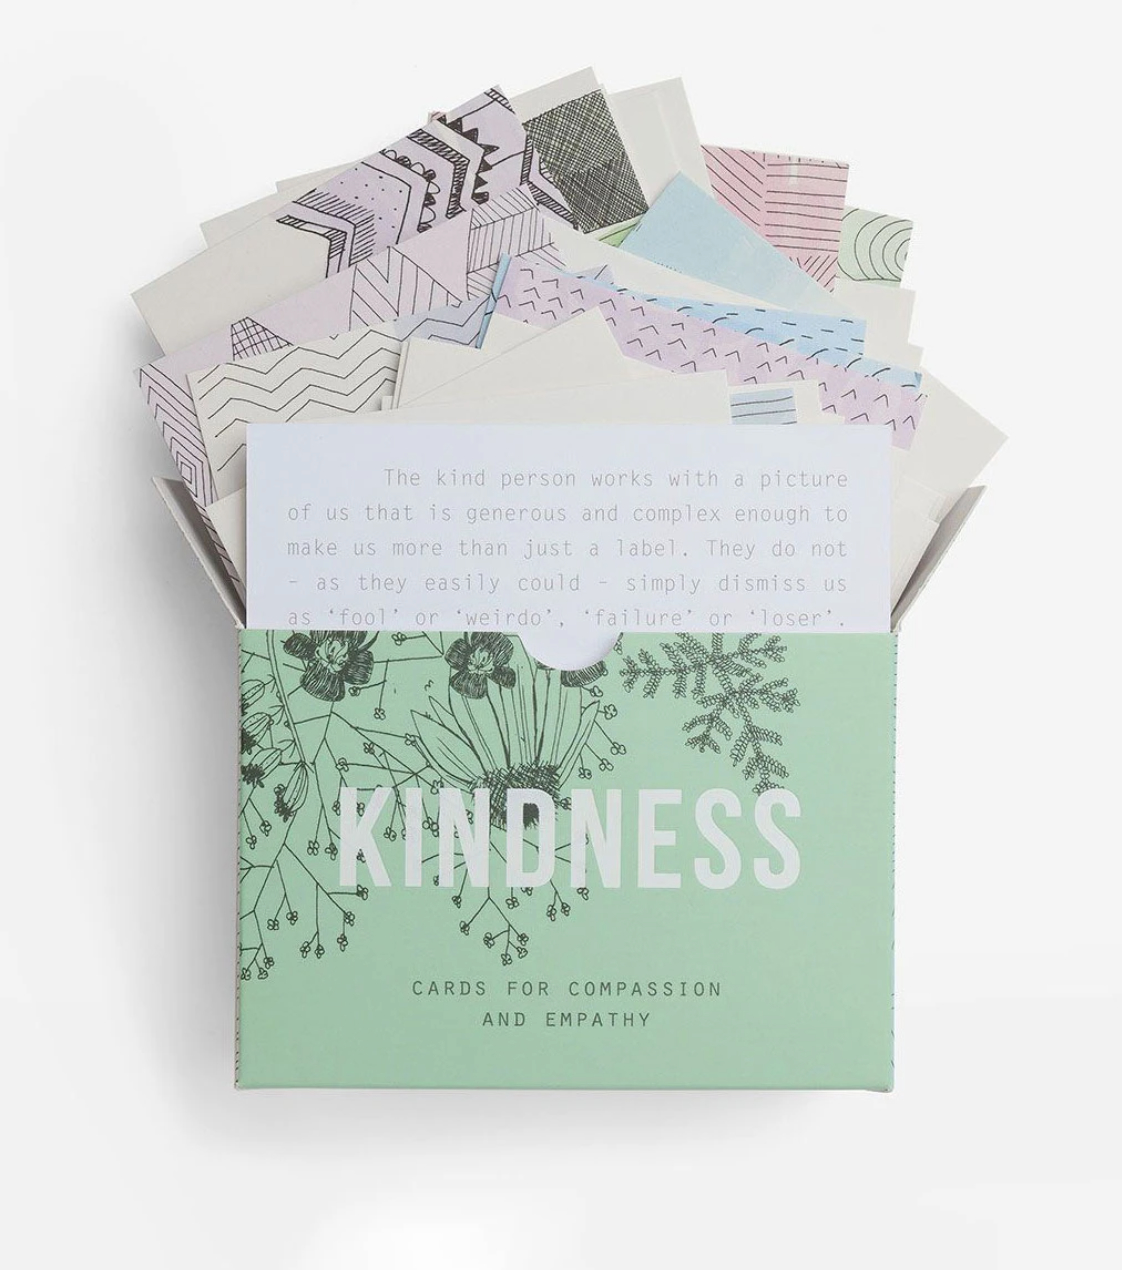 Kindness card deck from Edge of Urge